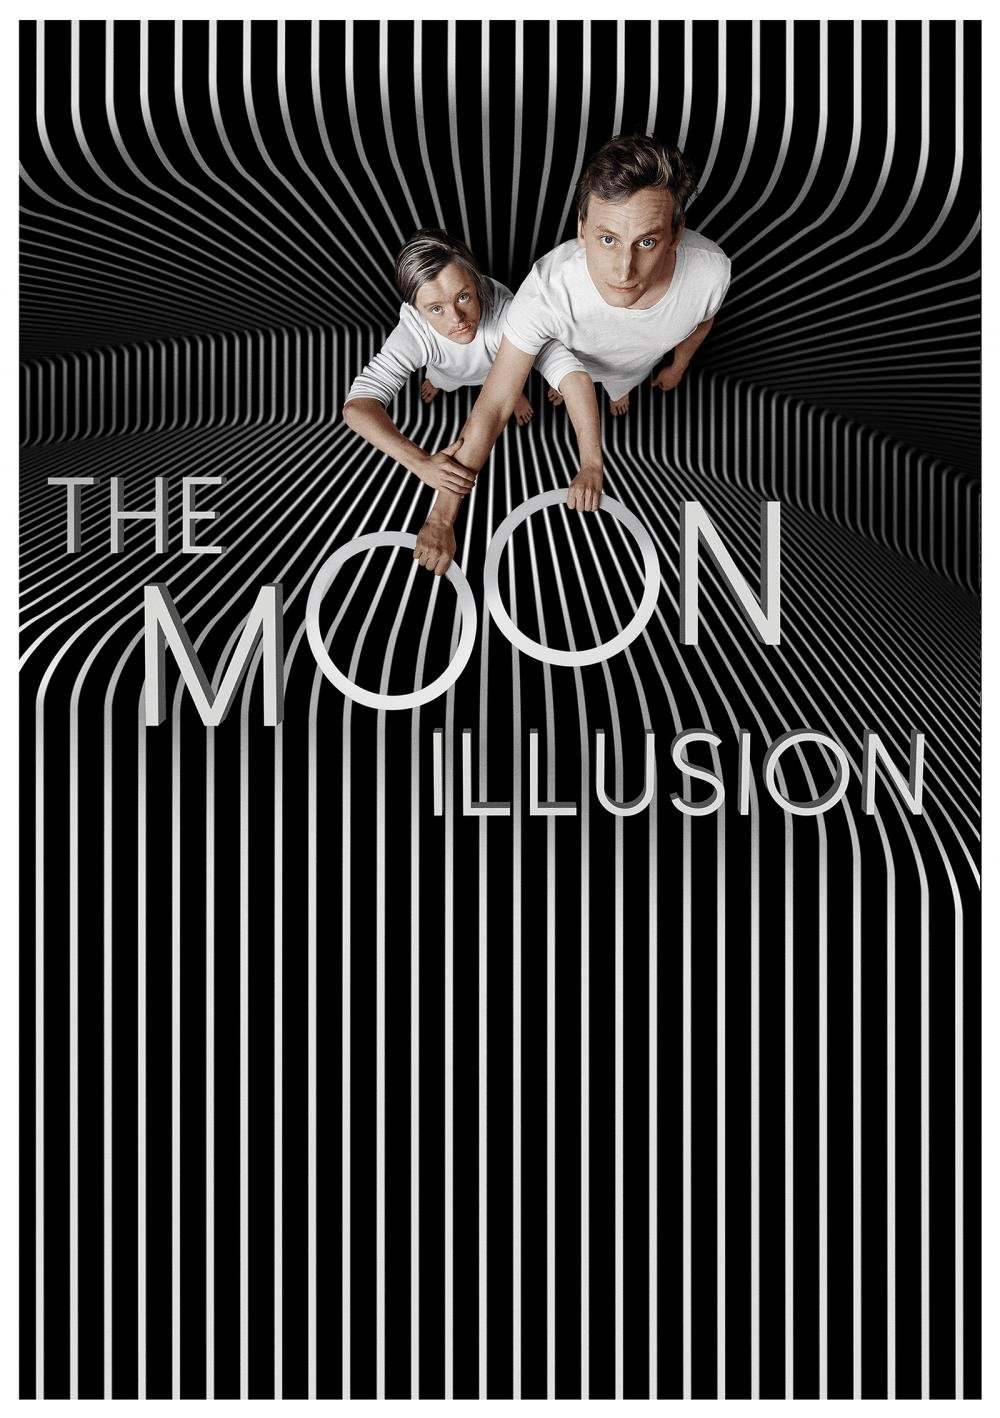 The Moon Illusion foto Ulf Lunden